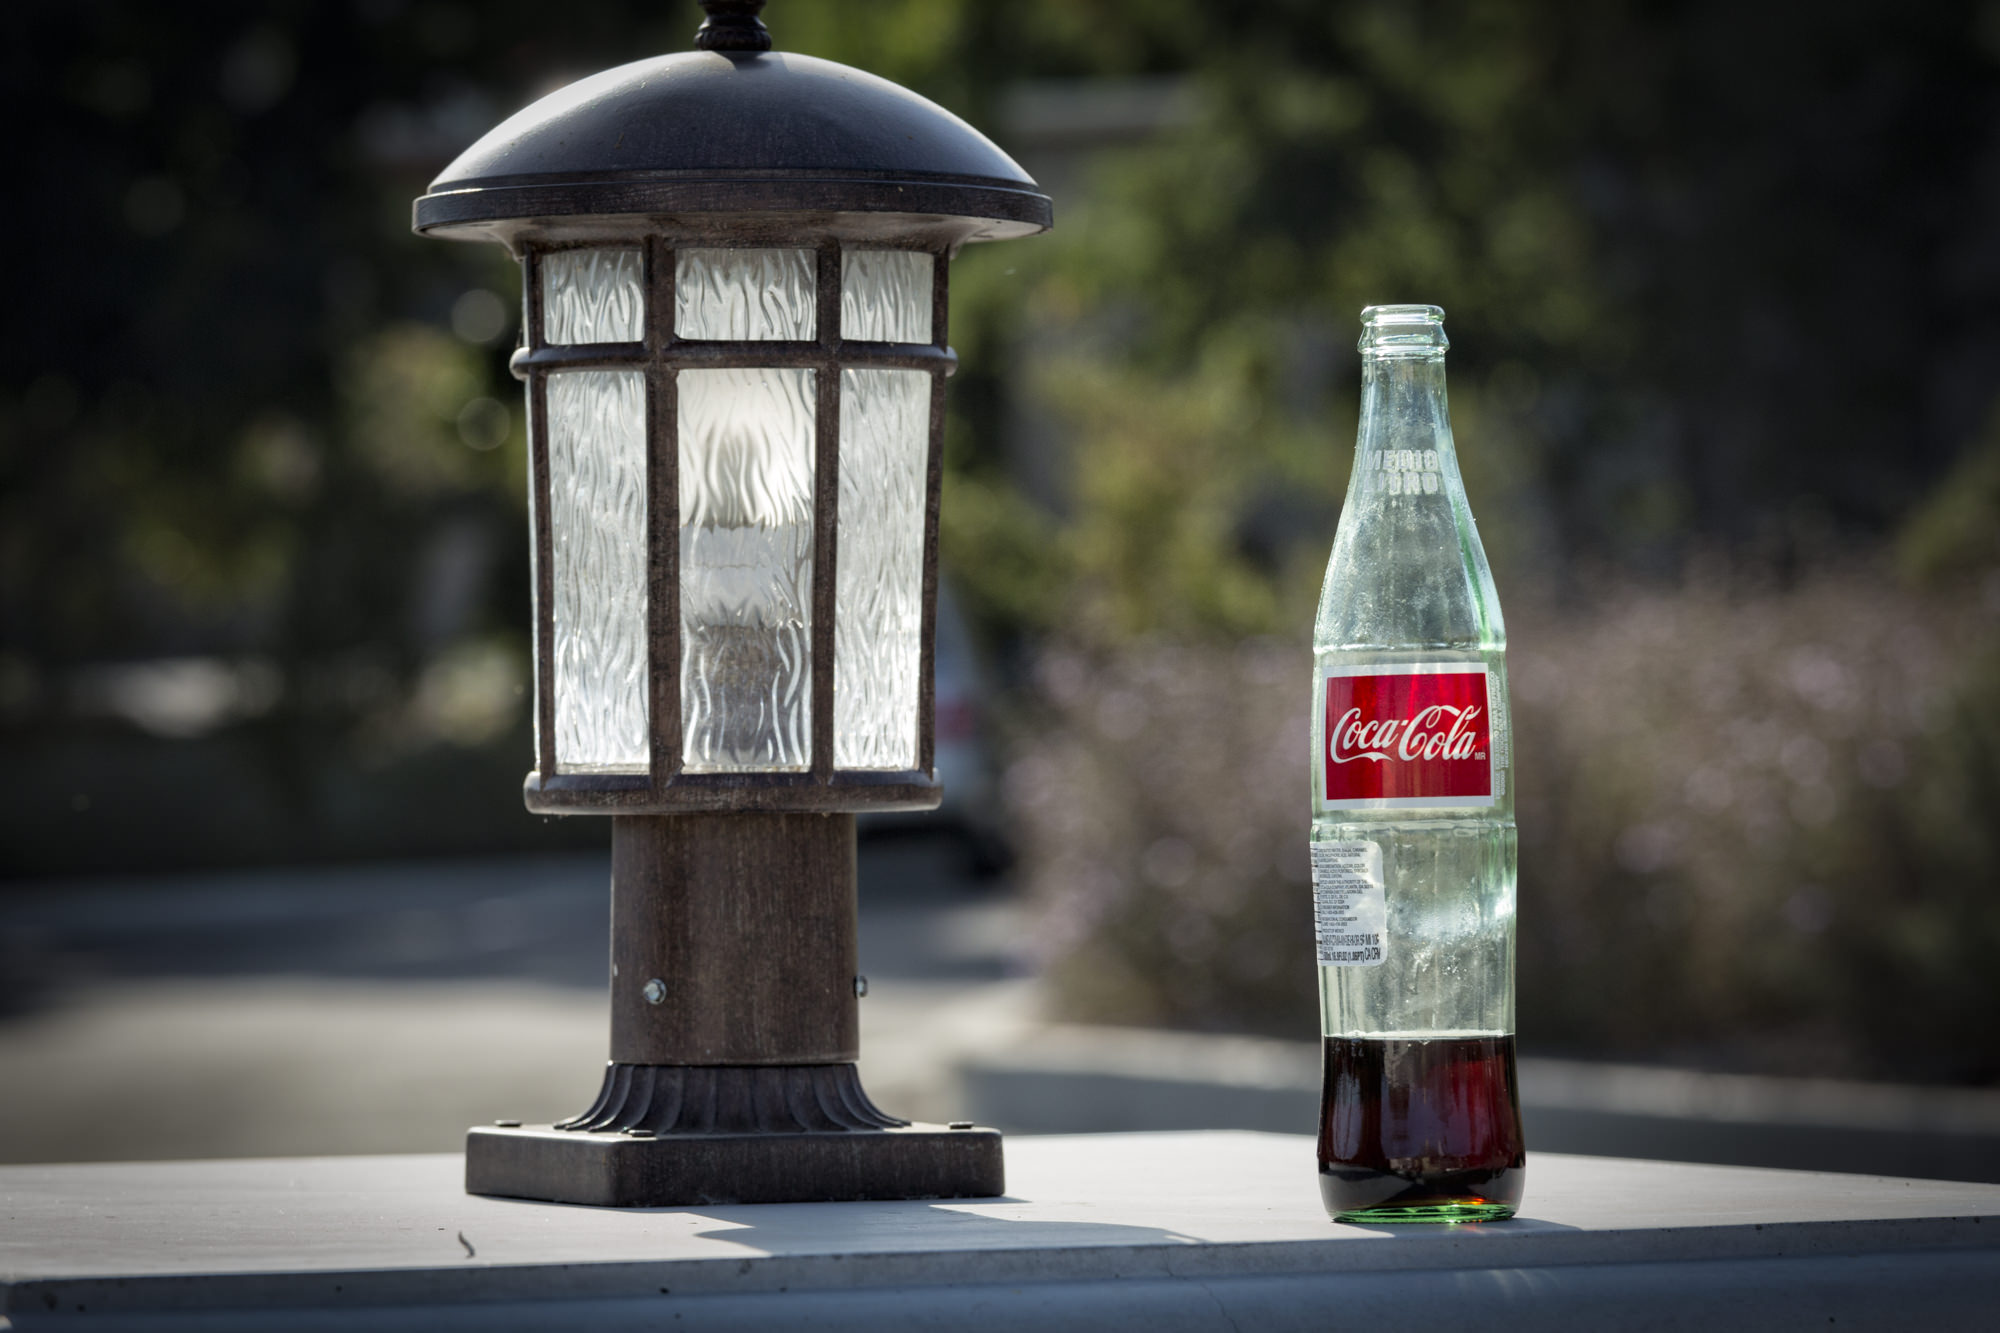 Someone left this nearly empty bottle next to a light and the mundane became an interesting juxtaposition of objects.